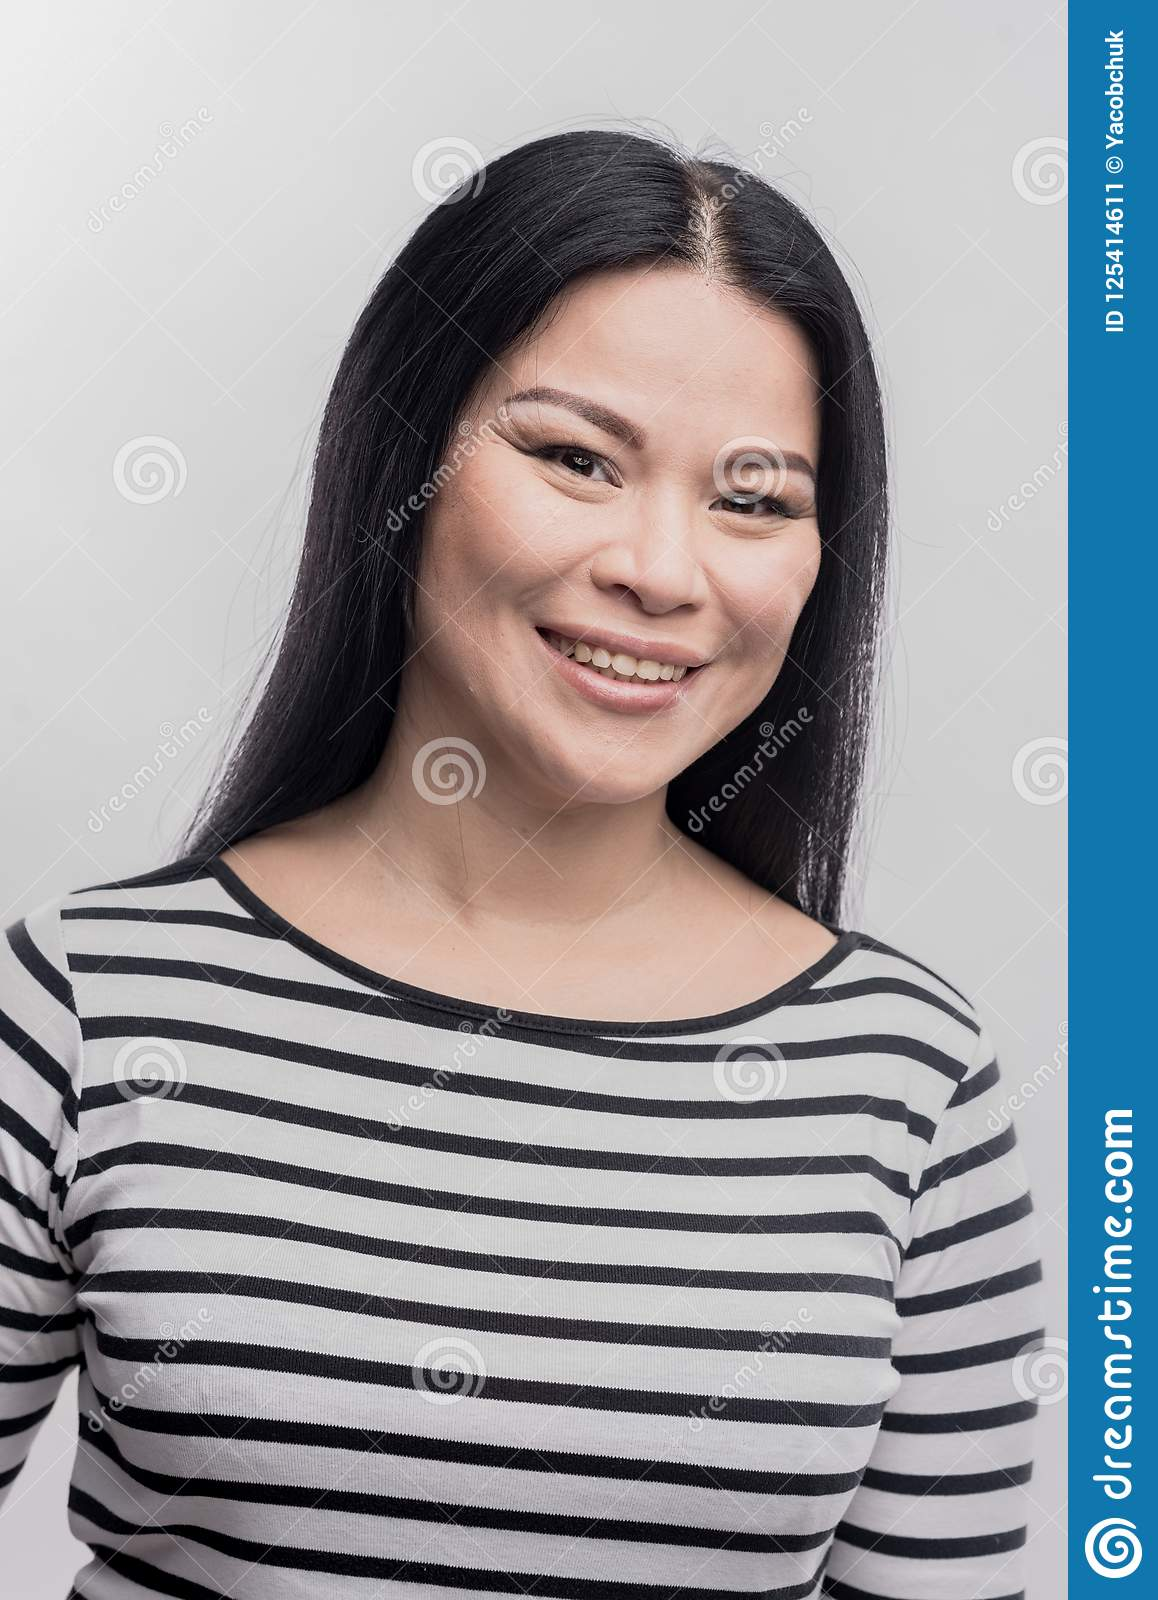 79a0a544b7a Dark-haired Smiling Woman Wearing Black And White Striped Shirt ...